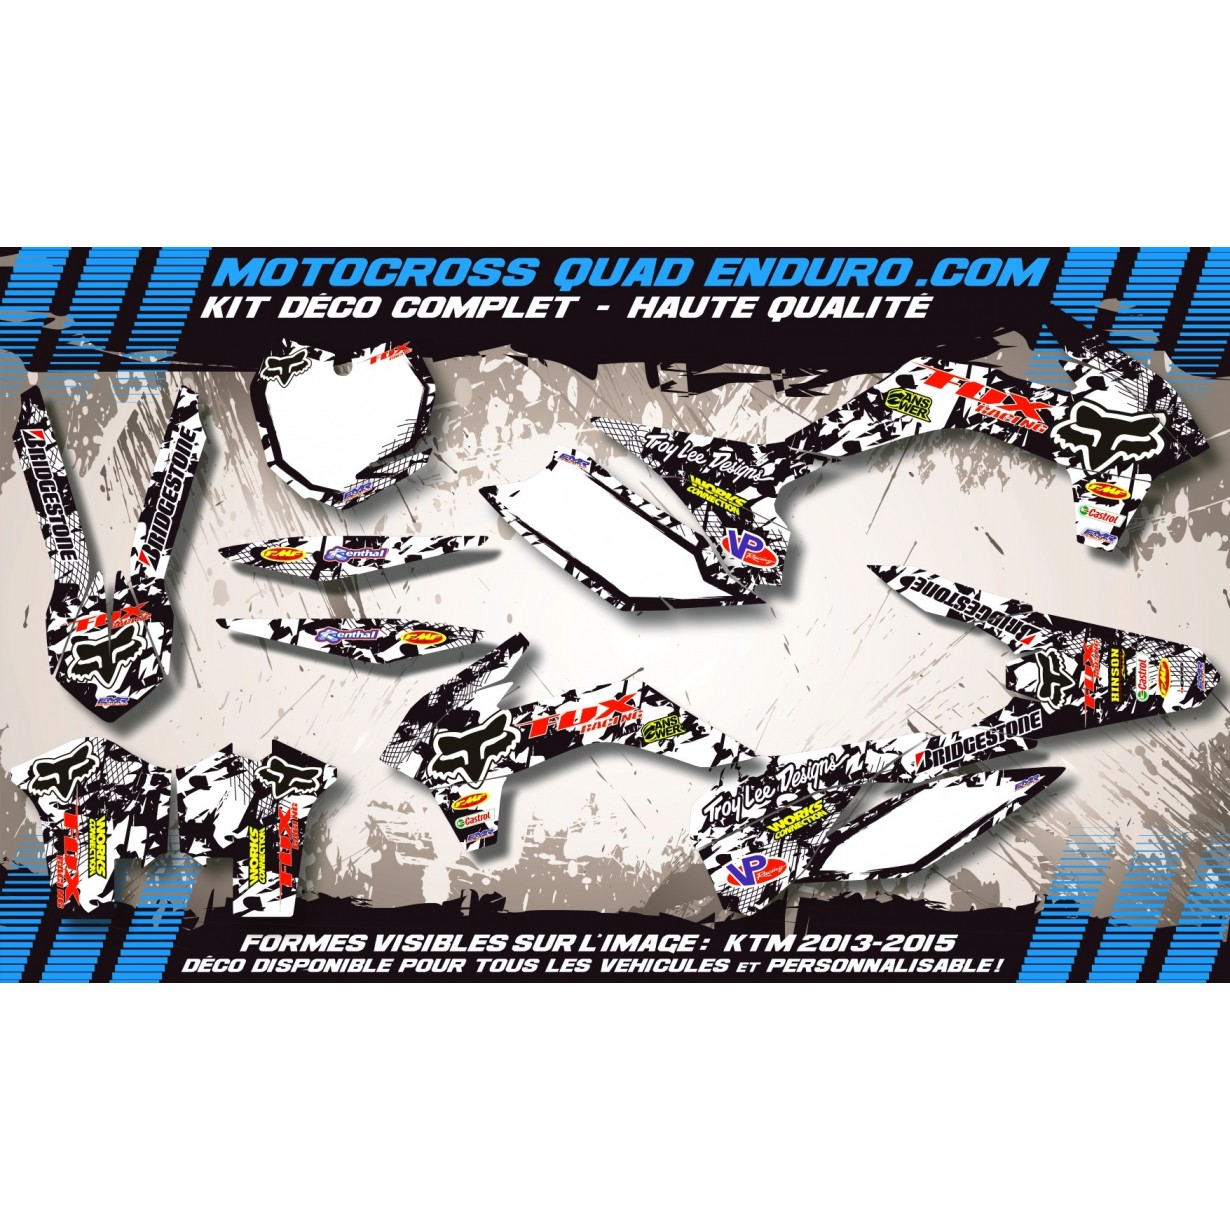 KIT DÉCO Perso 700 RAPTOR 13-16 Quad FOX MA9F